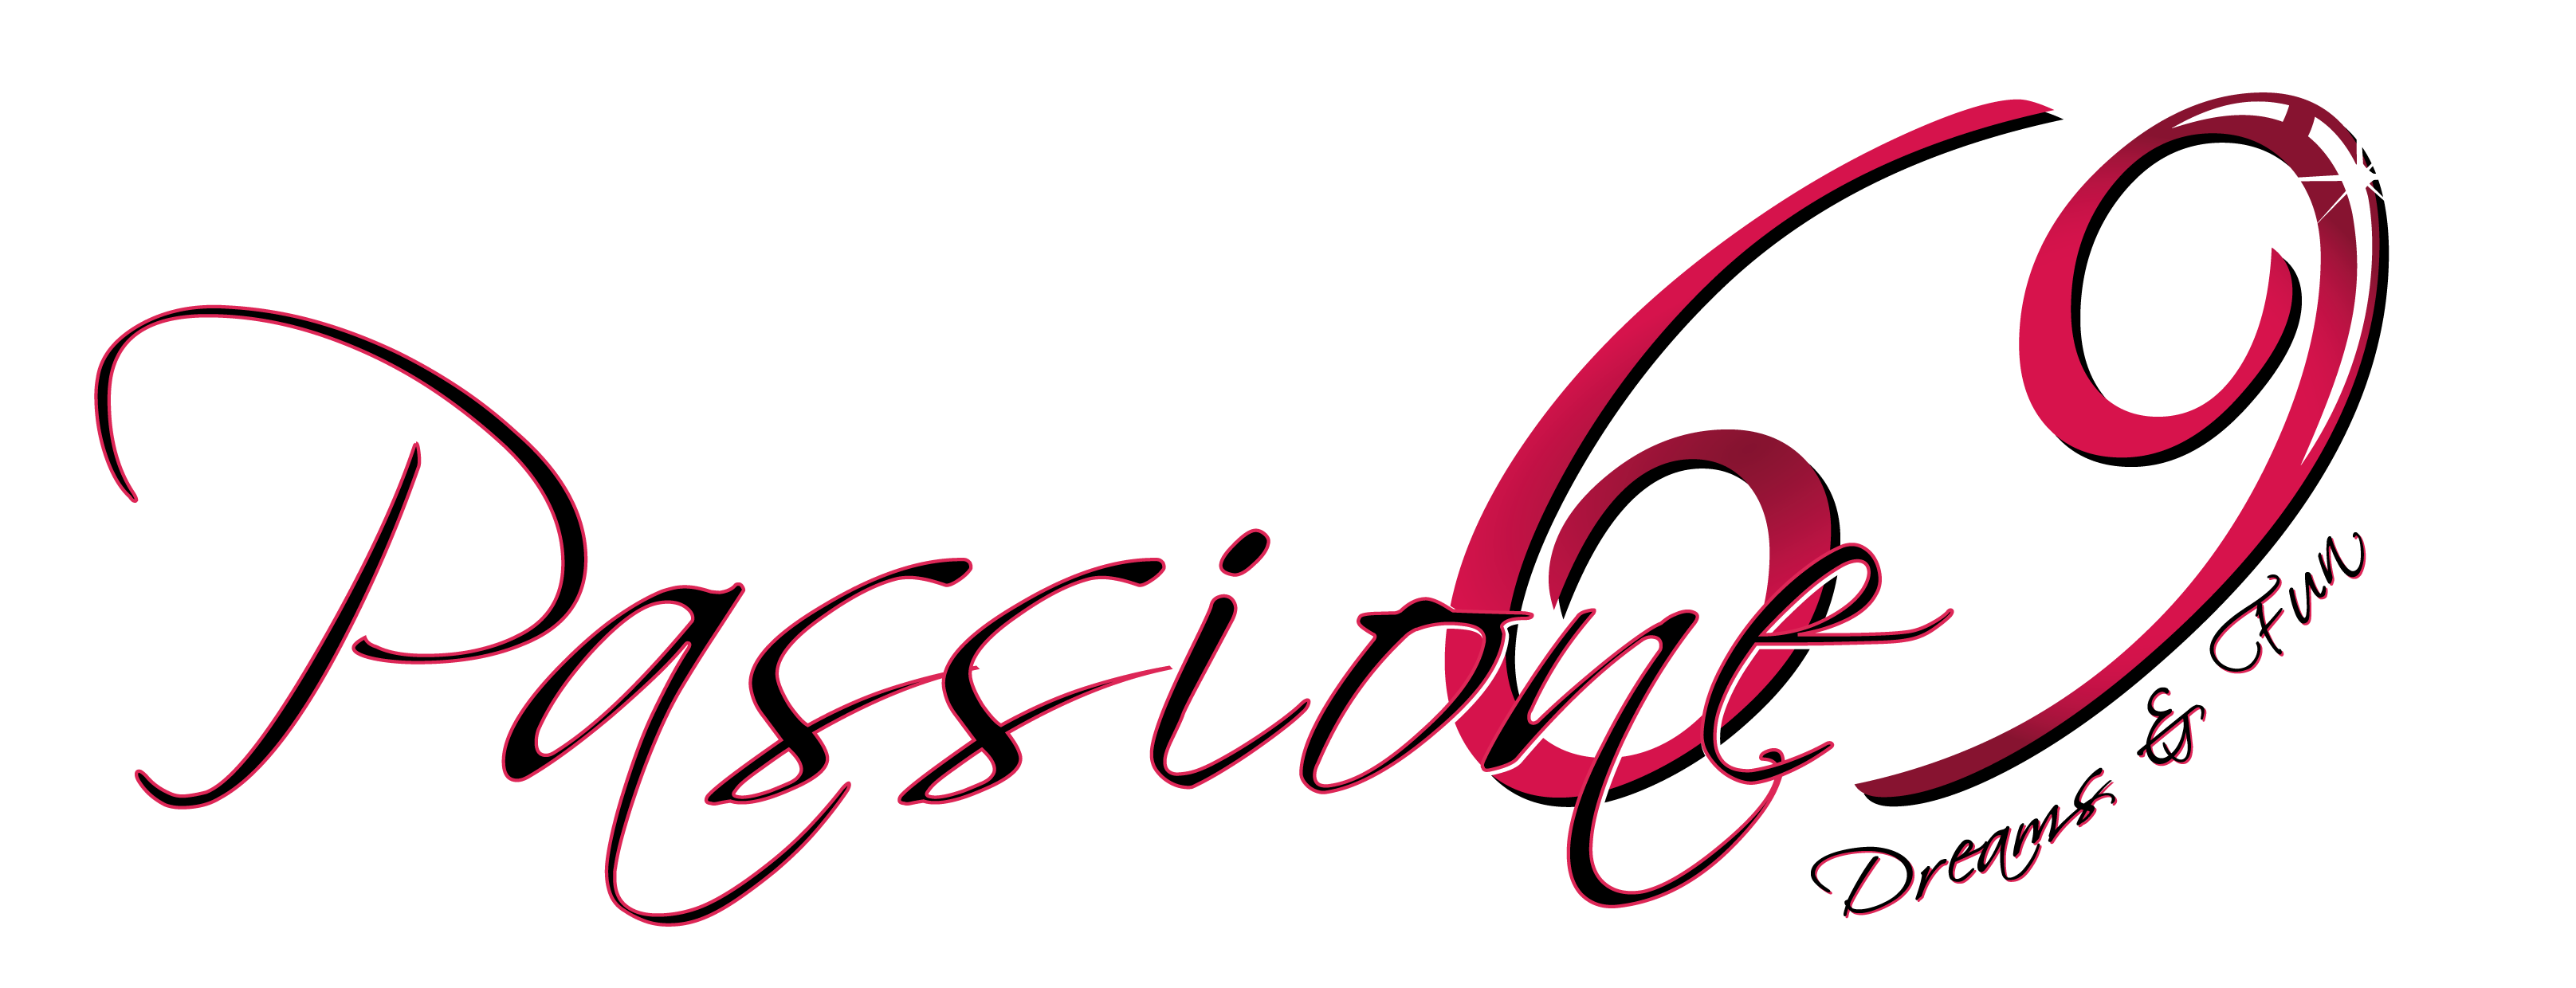 Passione69 Sexy Shop Online